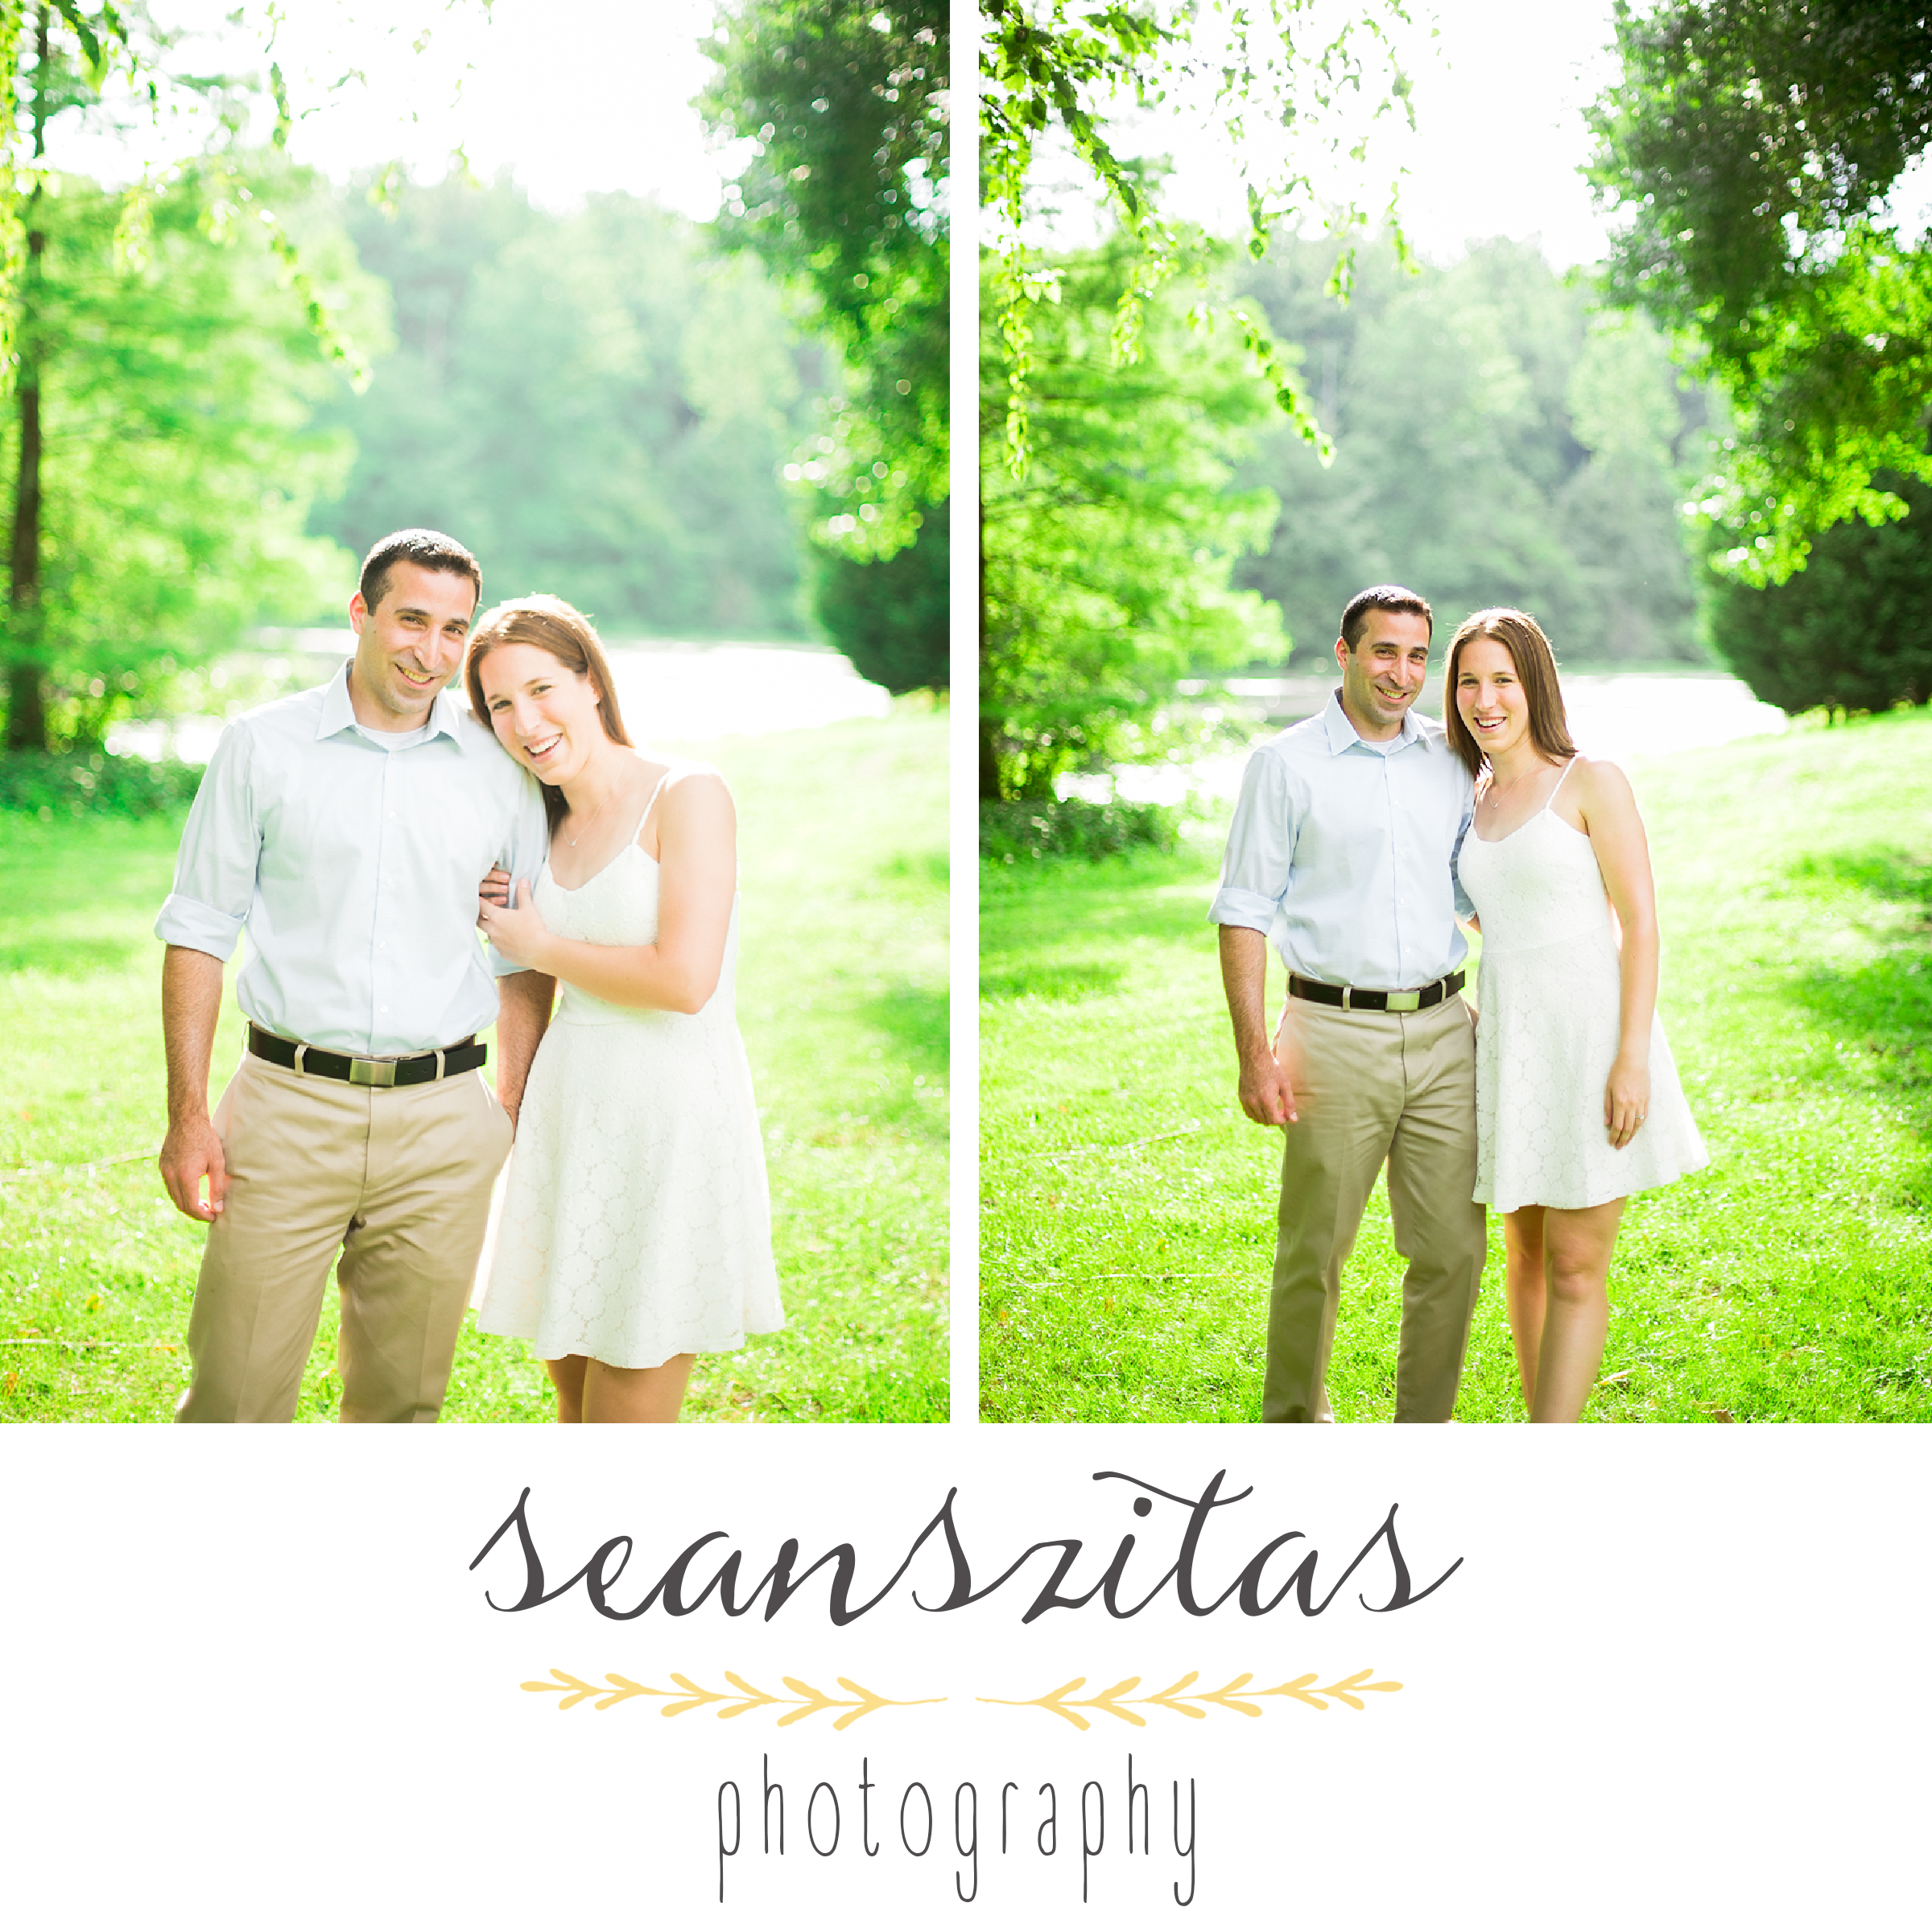 hagan stone park, sean szitas photography